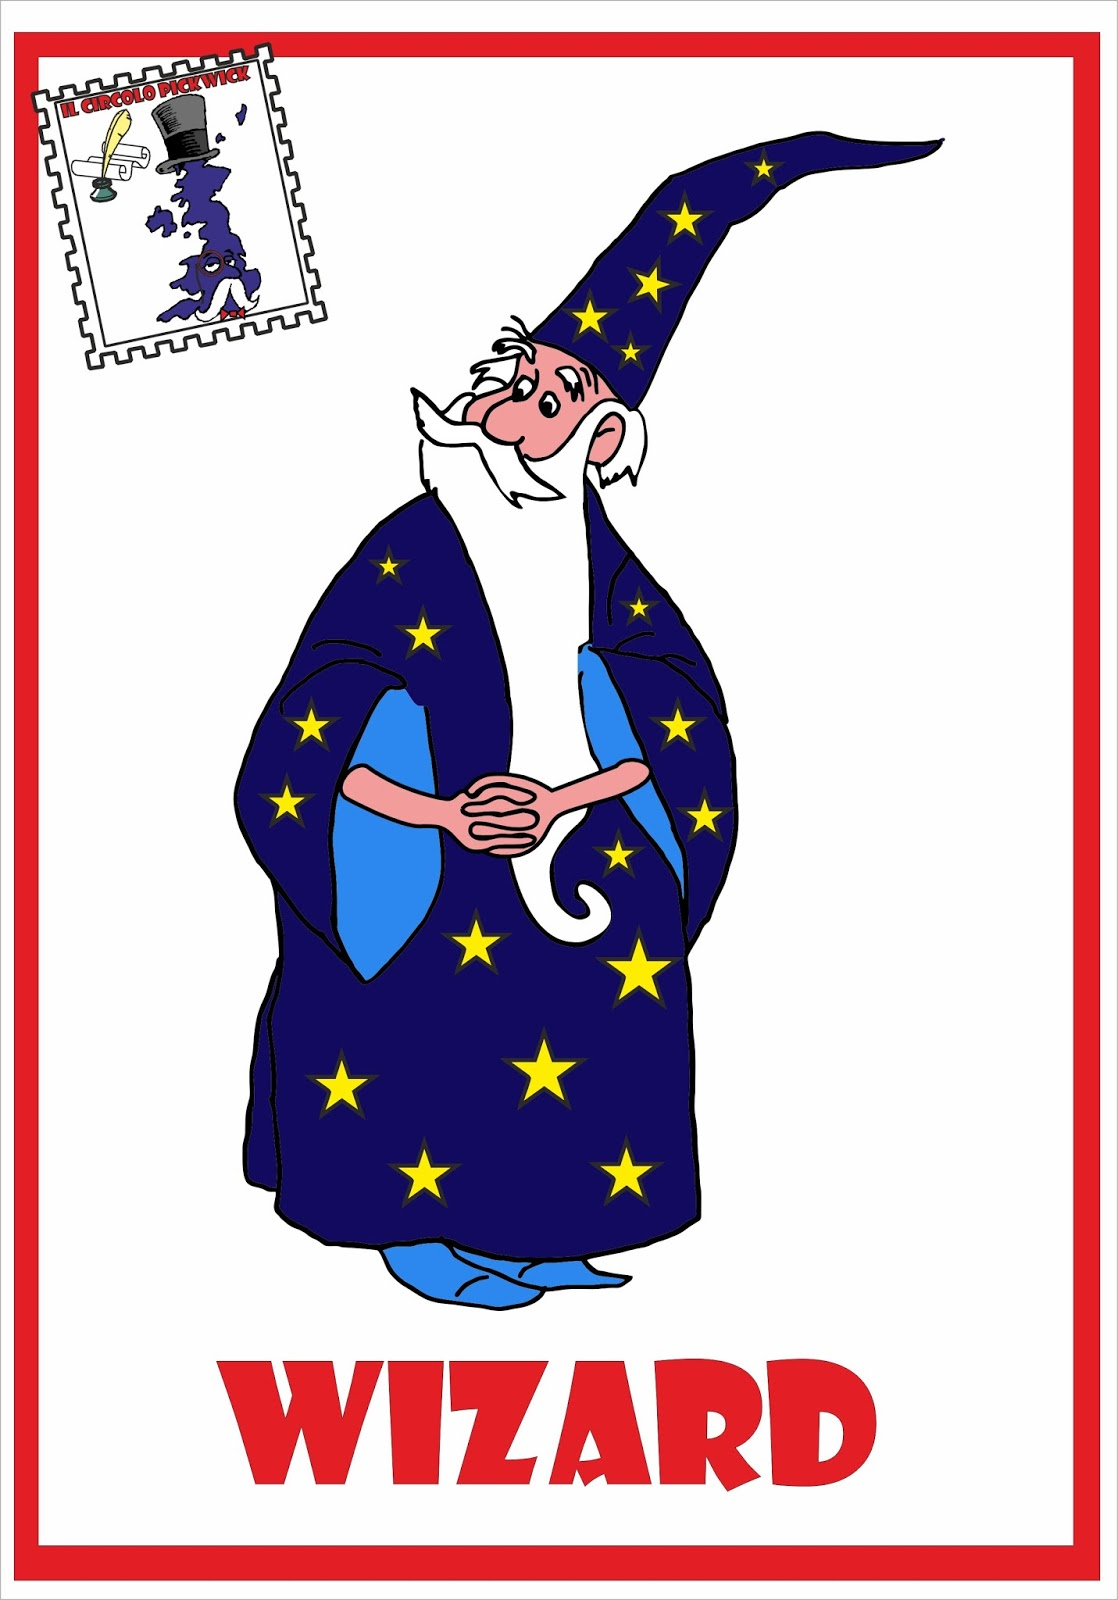 Wizard in inglese